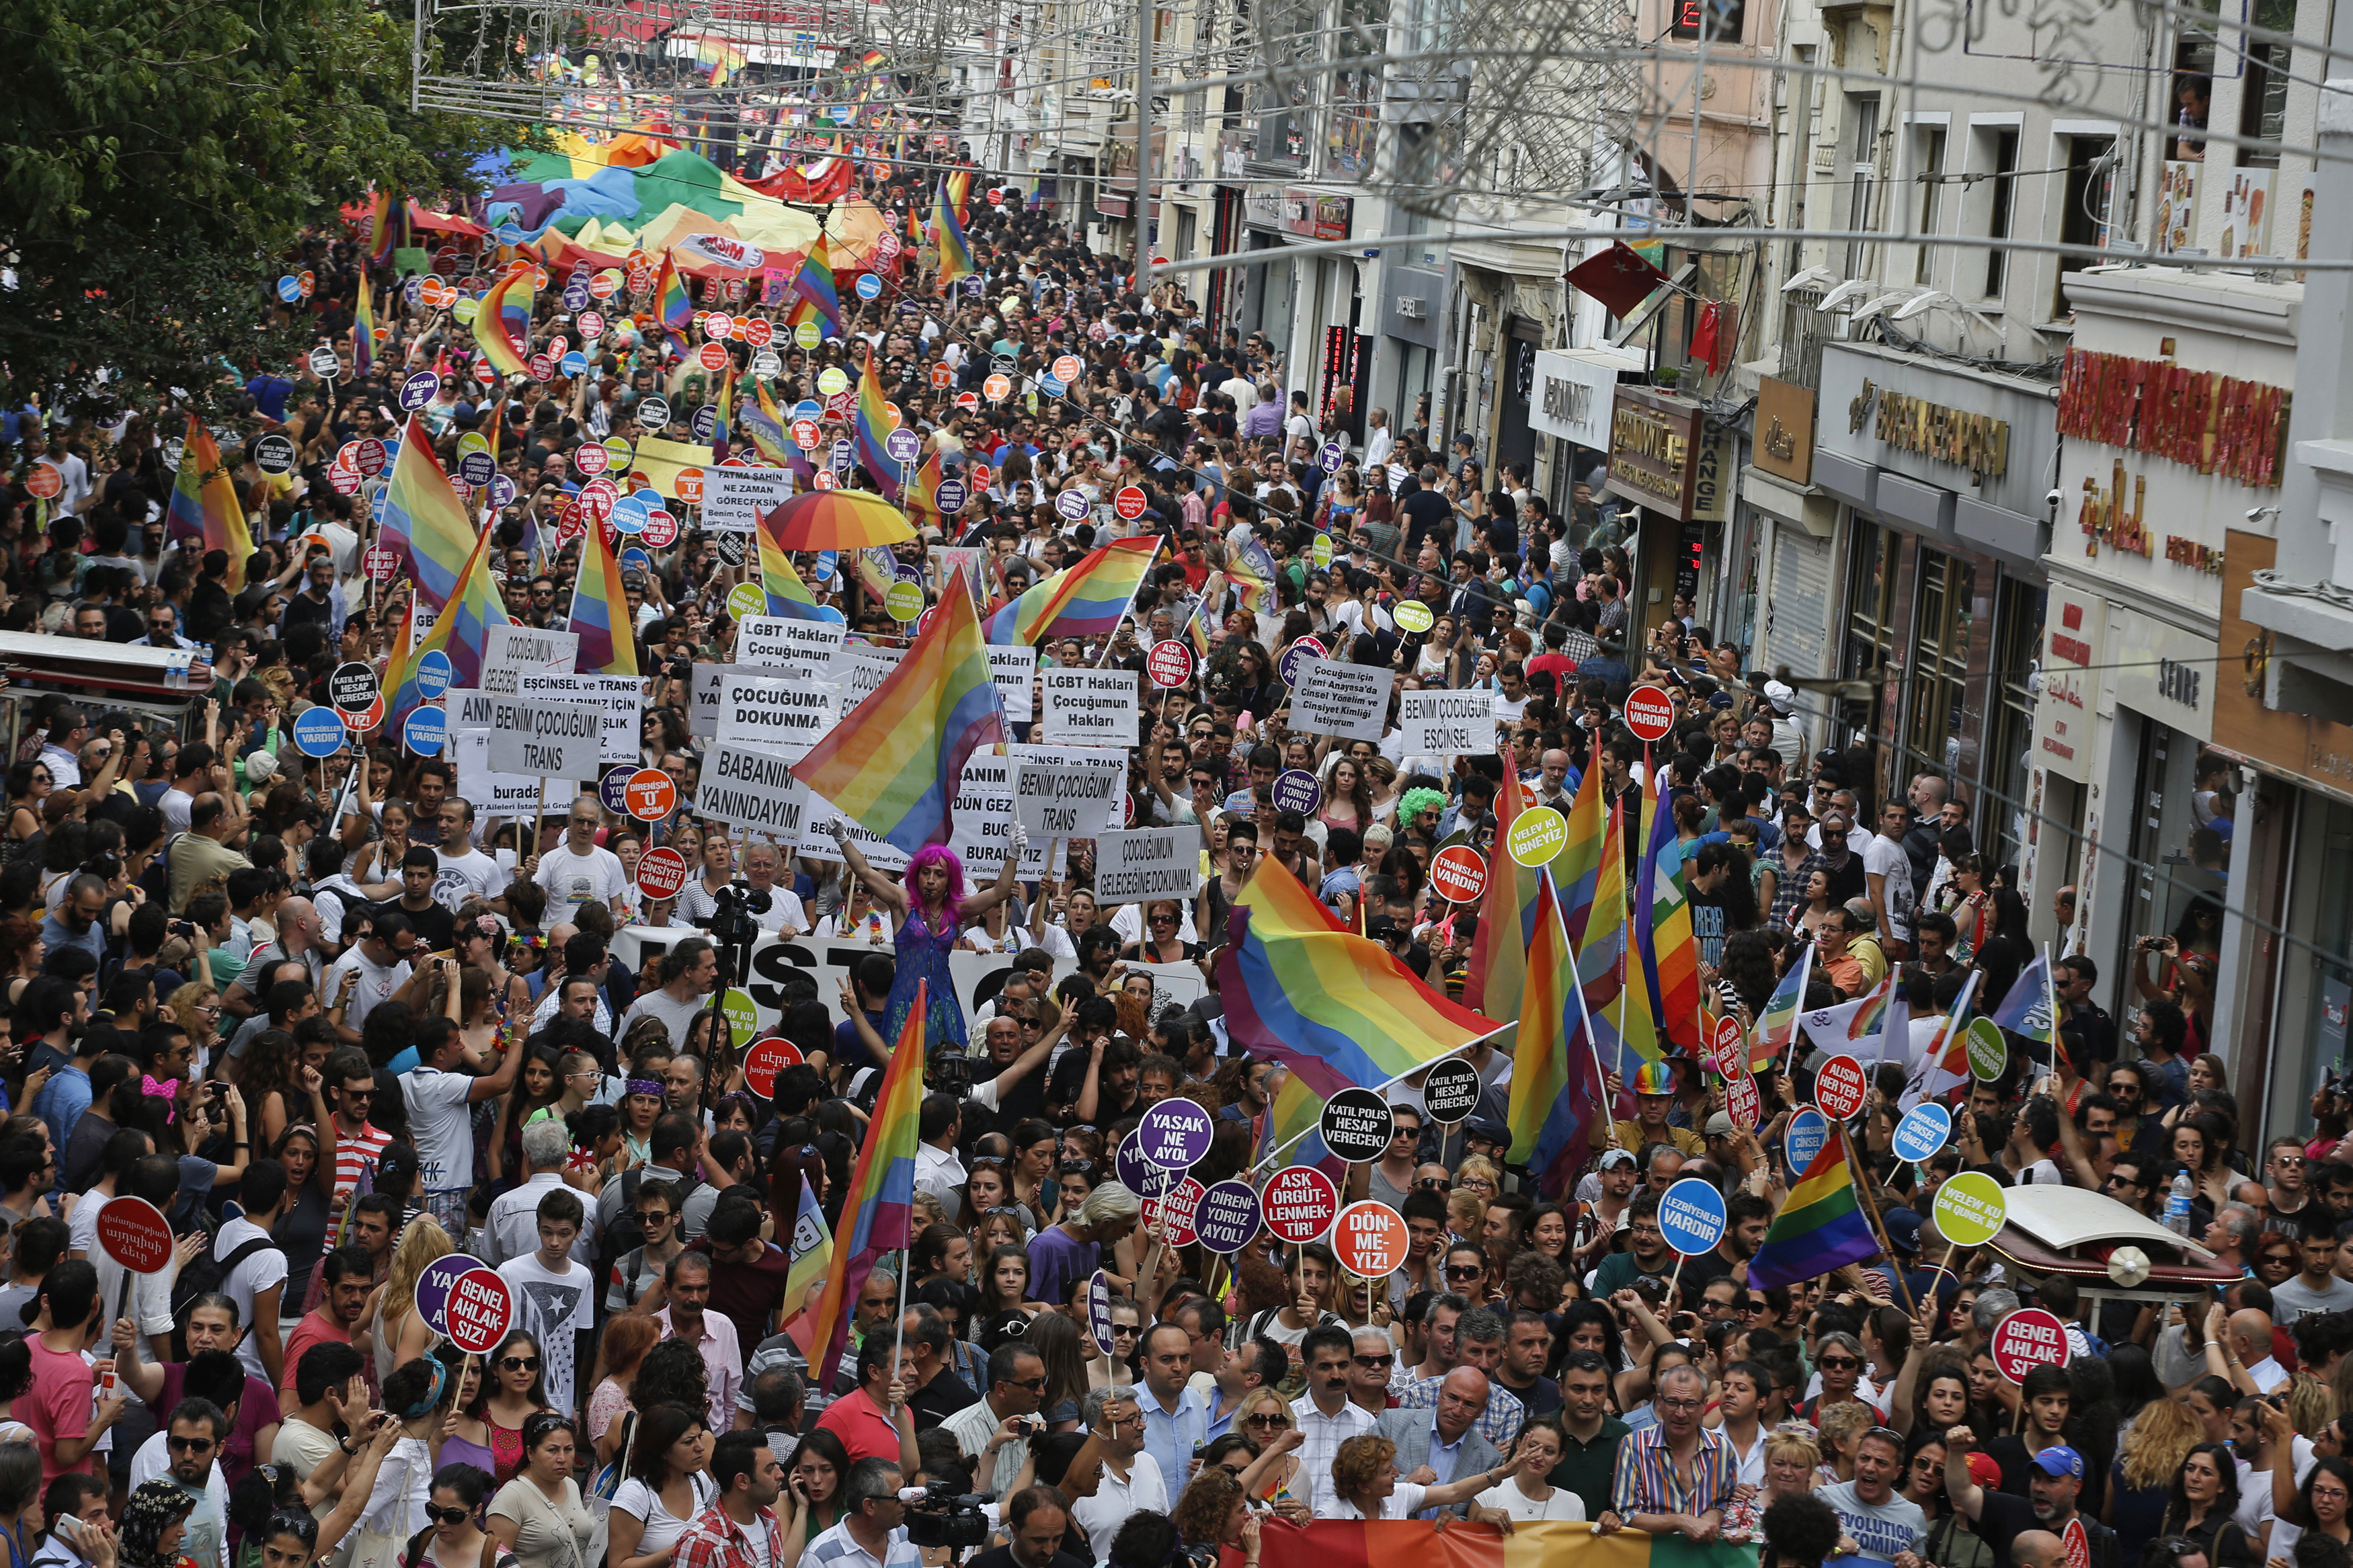 People march during a gay pride parade in Istanbul, June 30, 2013. Tens of thousands of anti-government protesters teamed up with a planned gay pride march in Istanbul. Crowds were stopped by riot police from entering Taksim, the center of previous p...